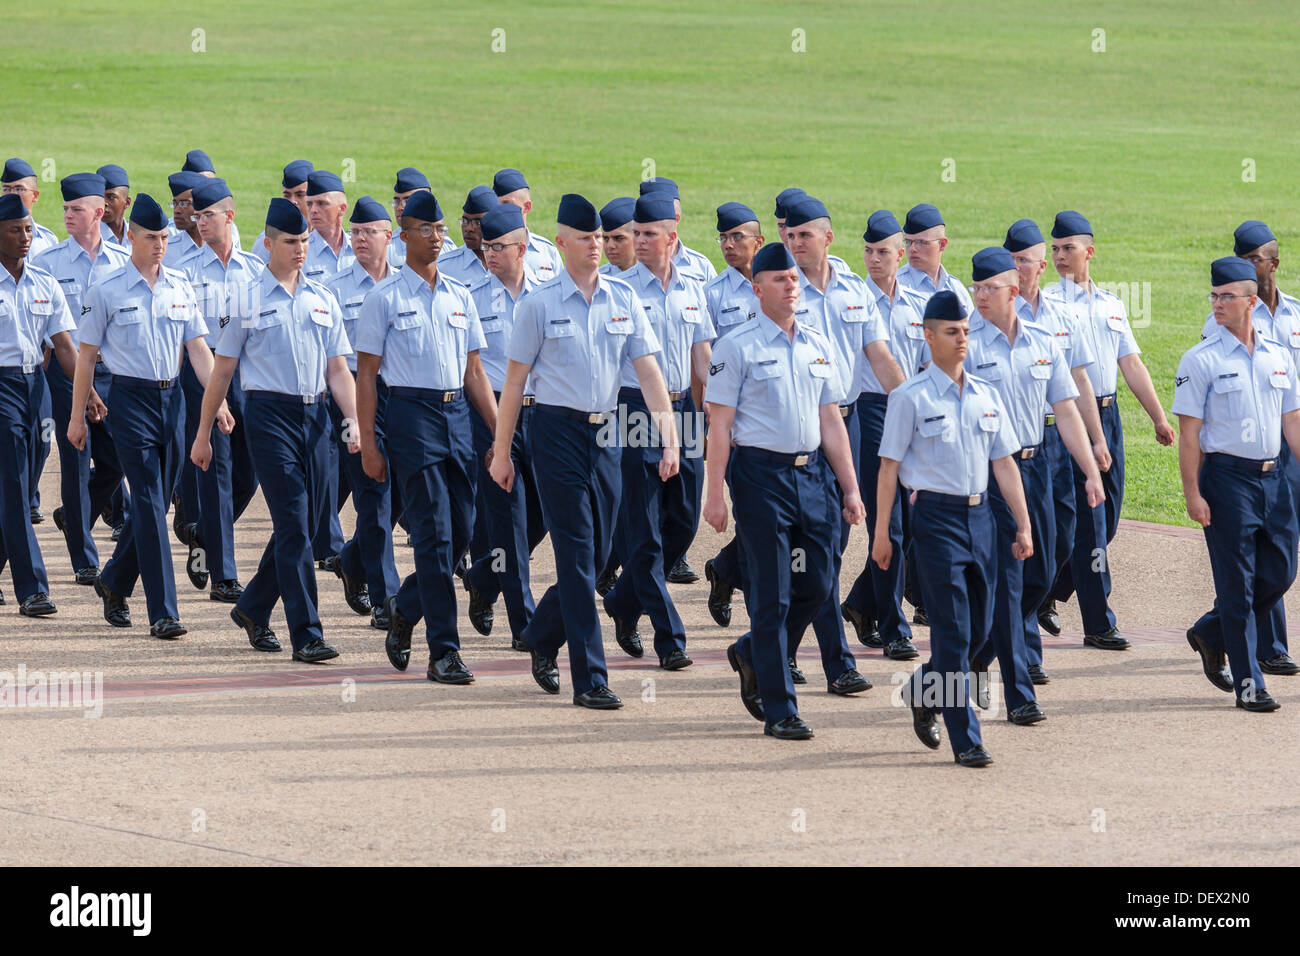 Flight Of Airmen In Dress Blues Marching During United